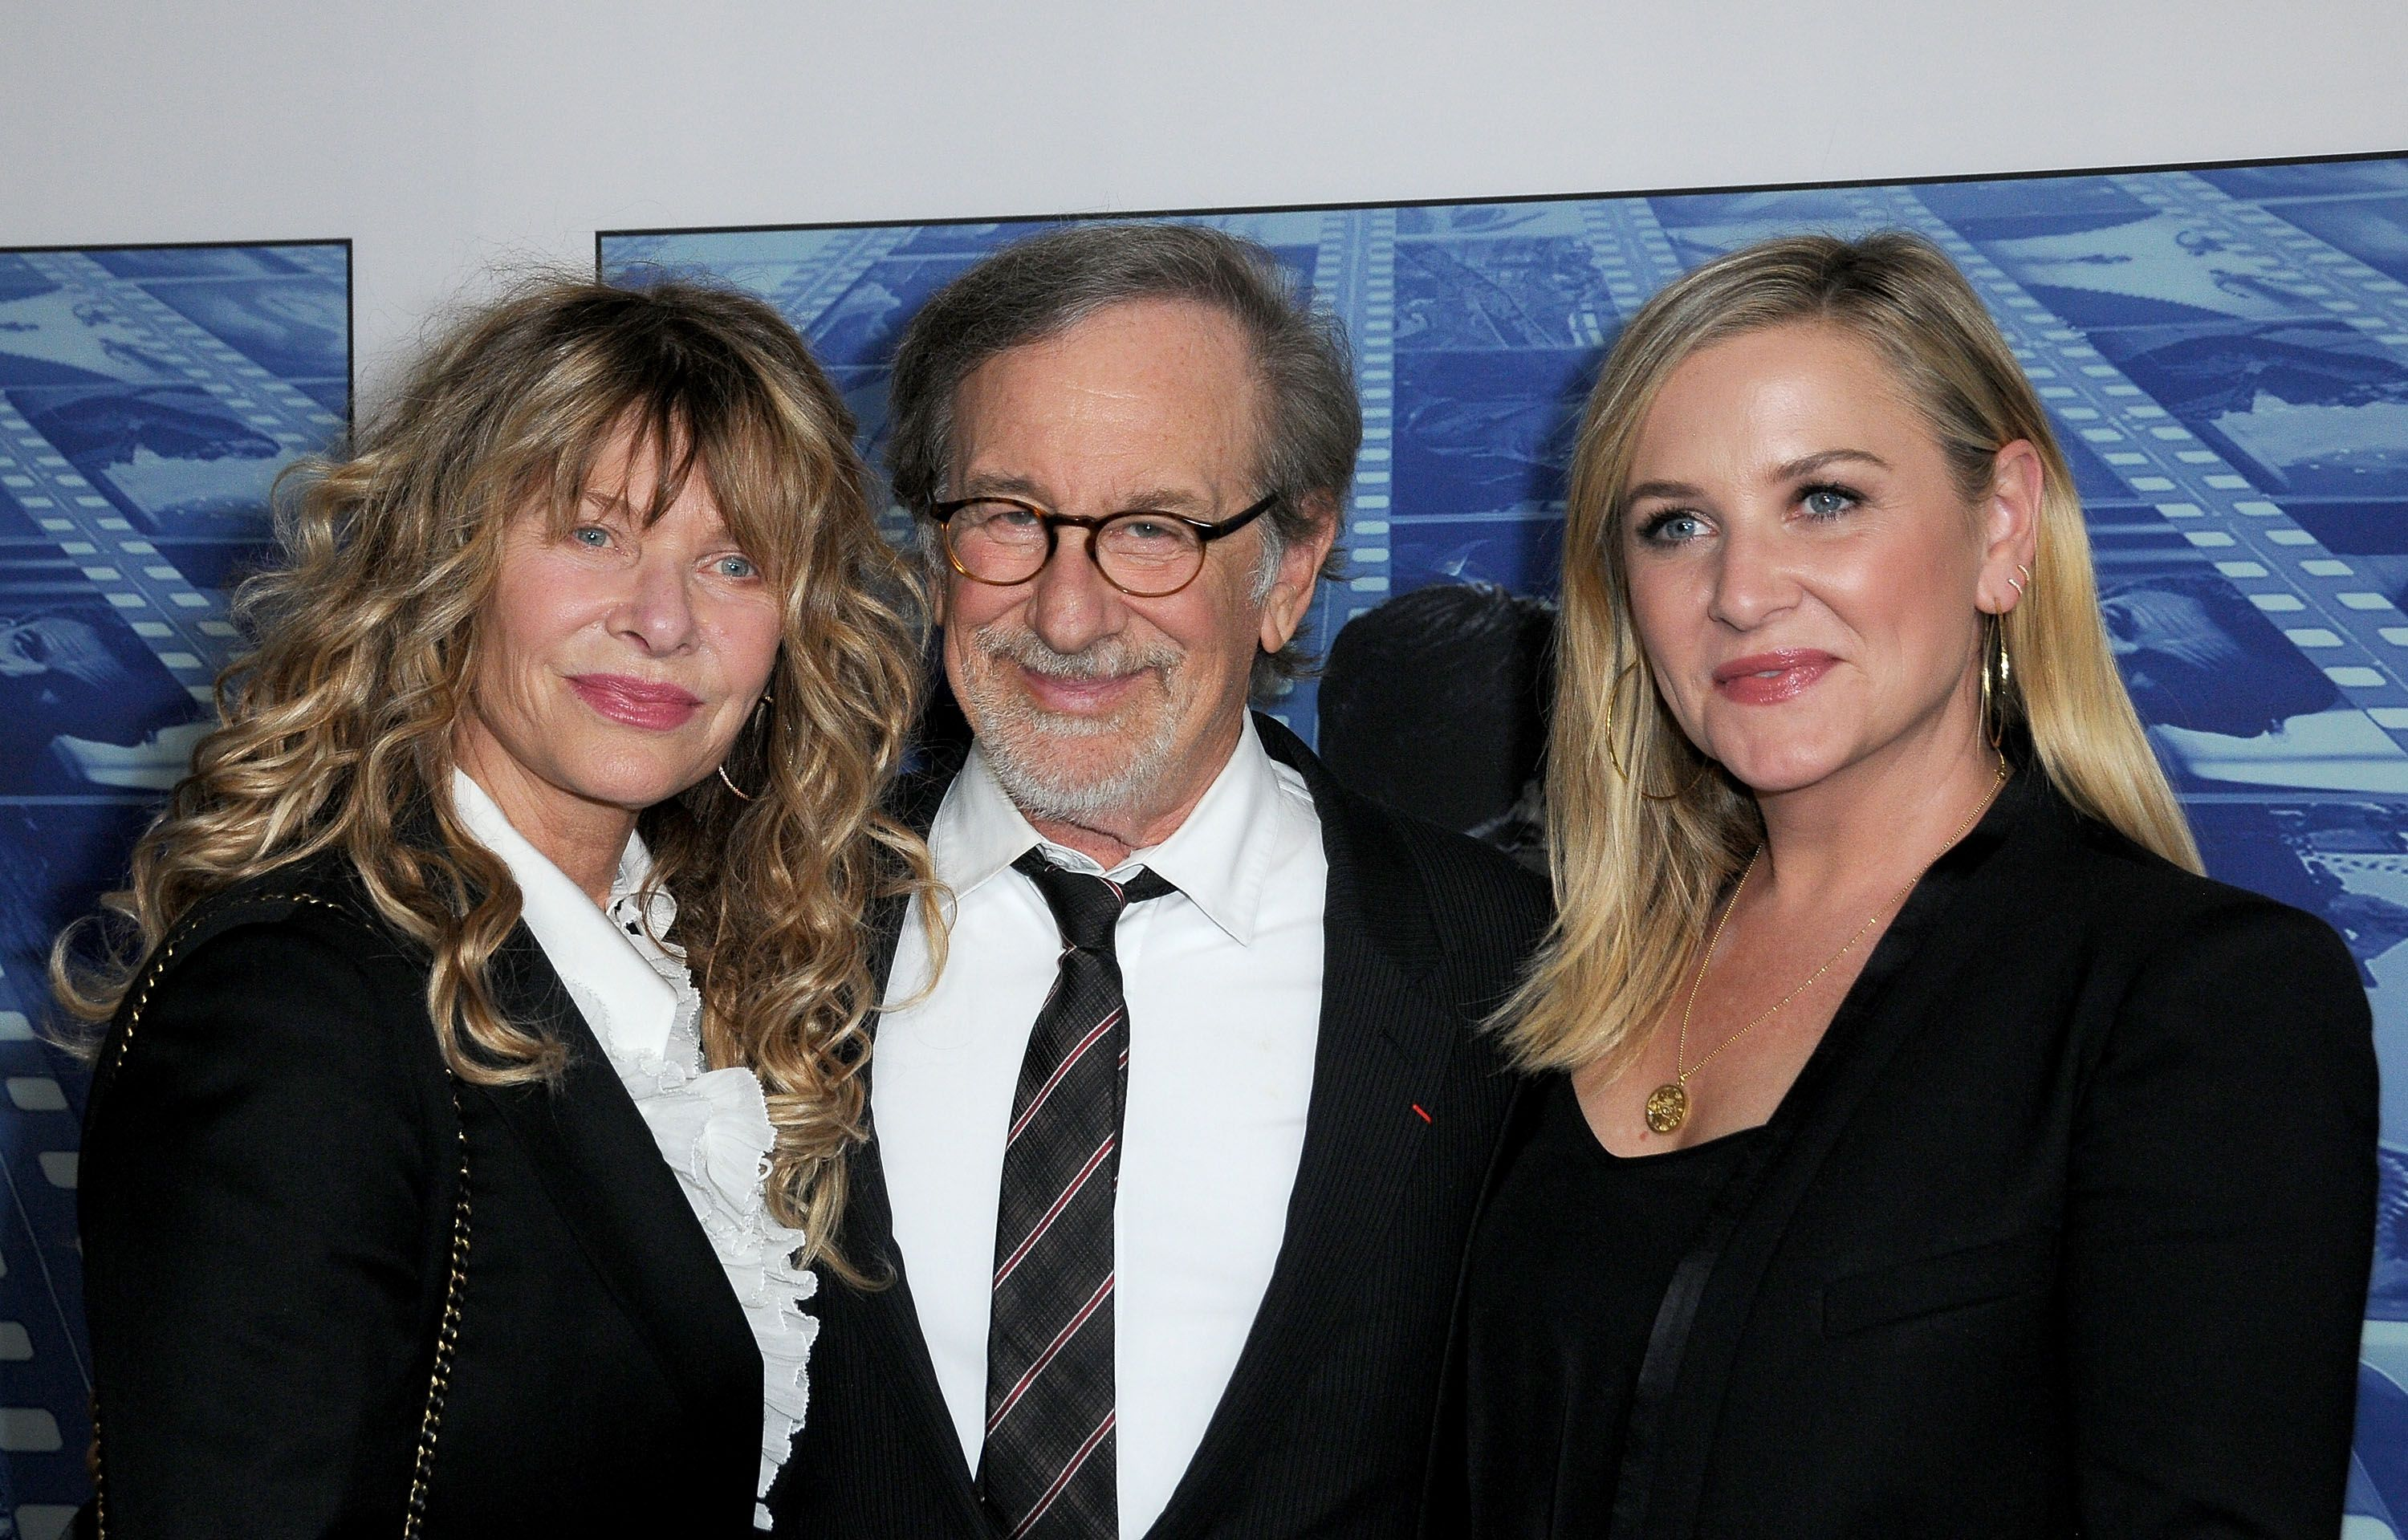 Jessica Capshaw with Kate Capshaw, and Steven Spielberg at the premiere of HBO's 'Spielberg' in 2017 in Hollywood | Source: Getty Images